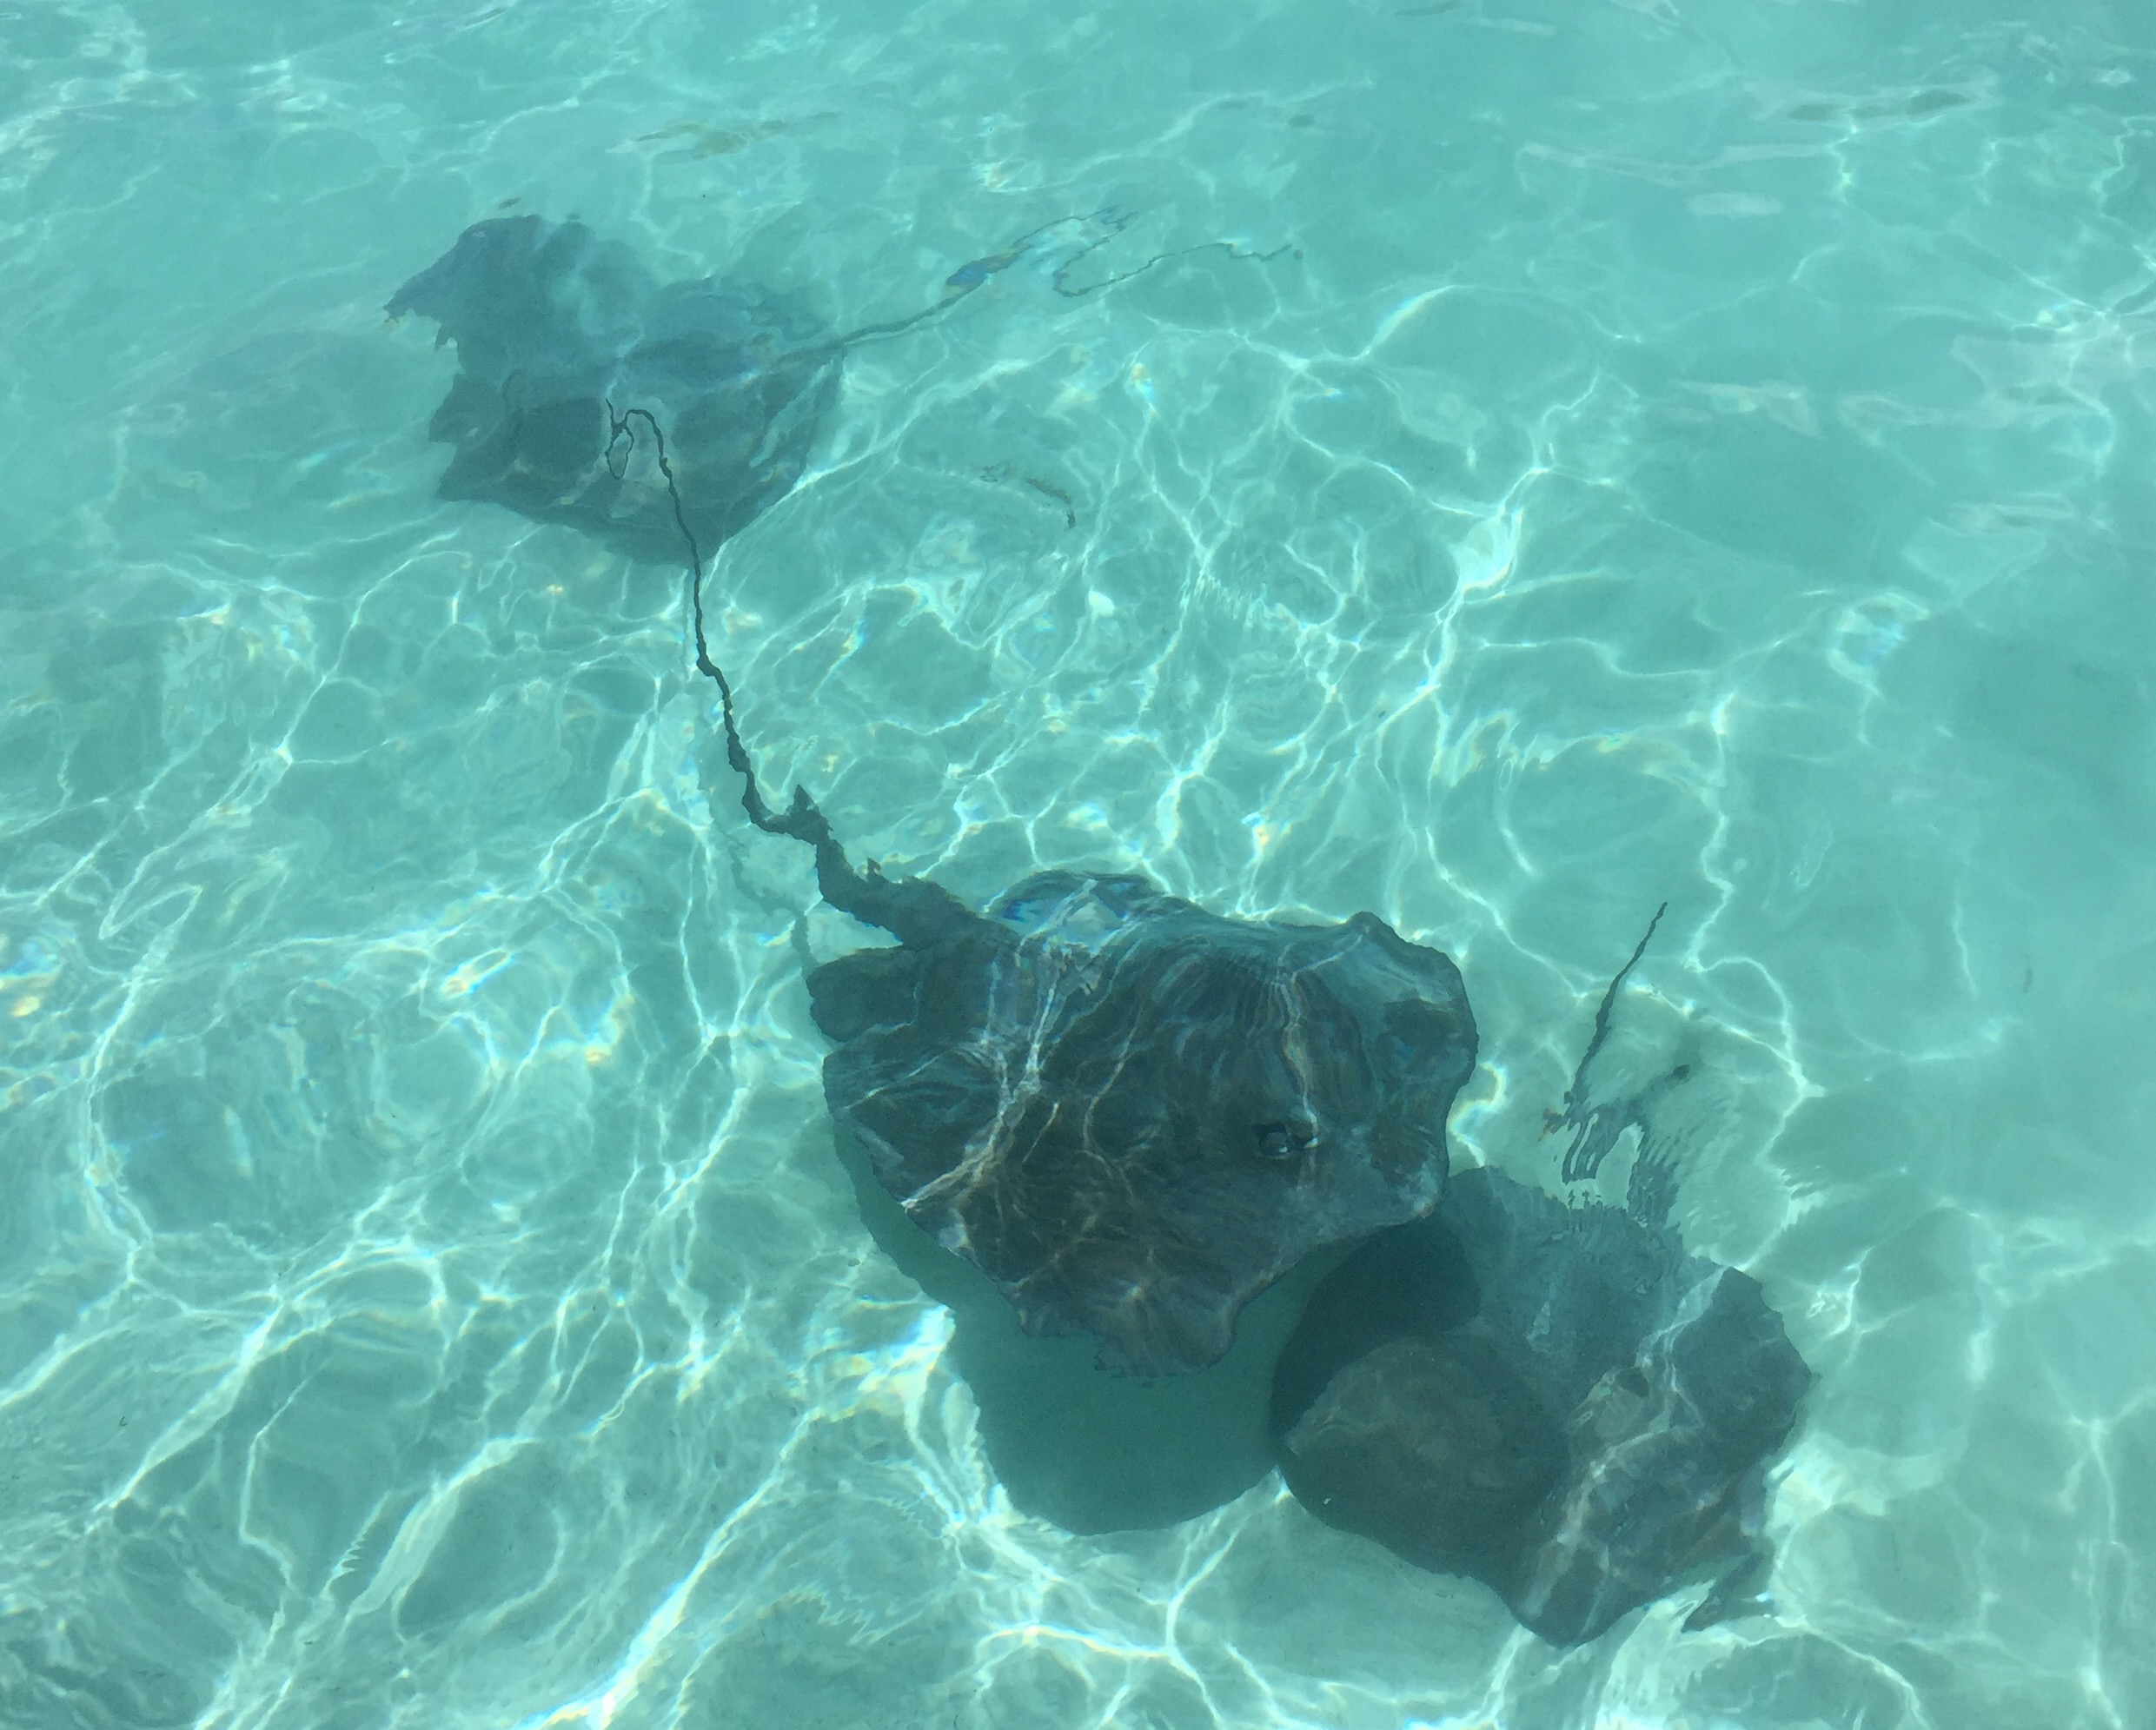 Four-foot diameter sting rays lying some five feet below the surface of the water. They were very friendly!